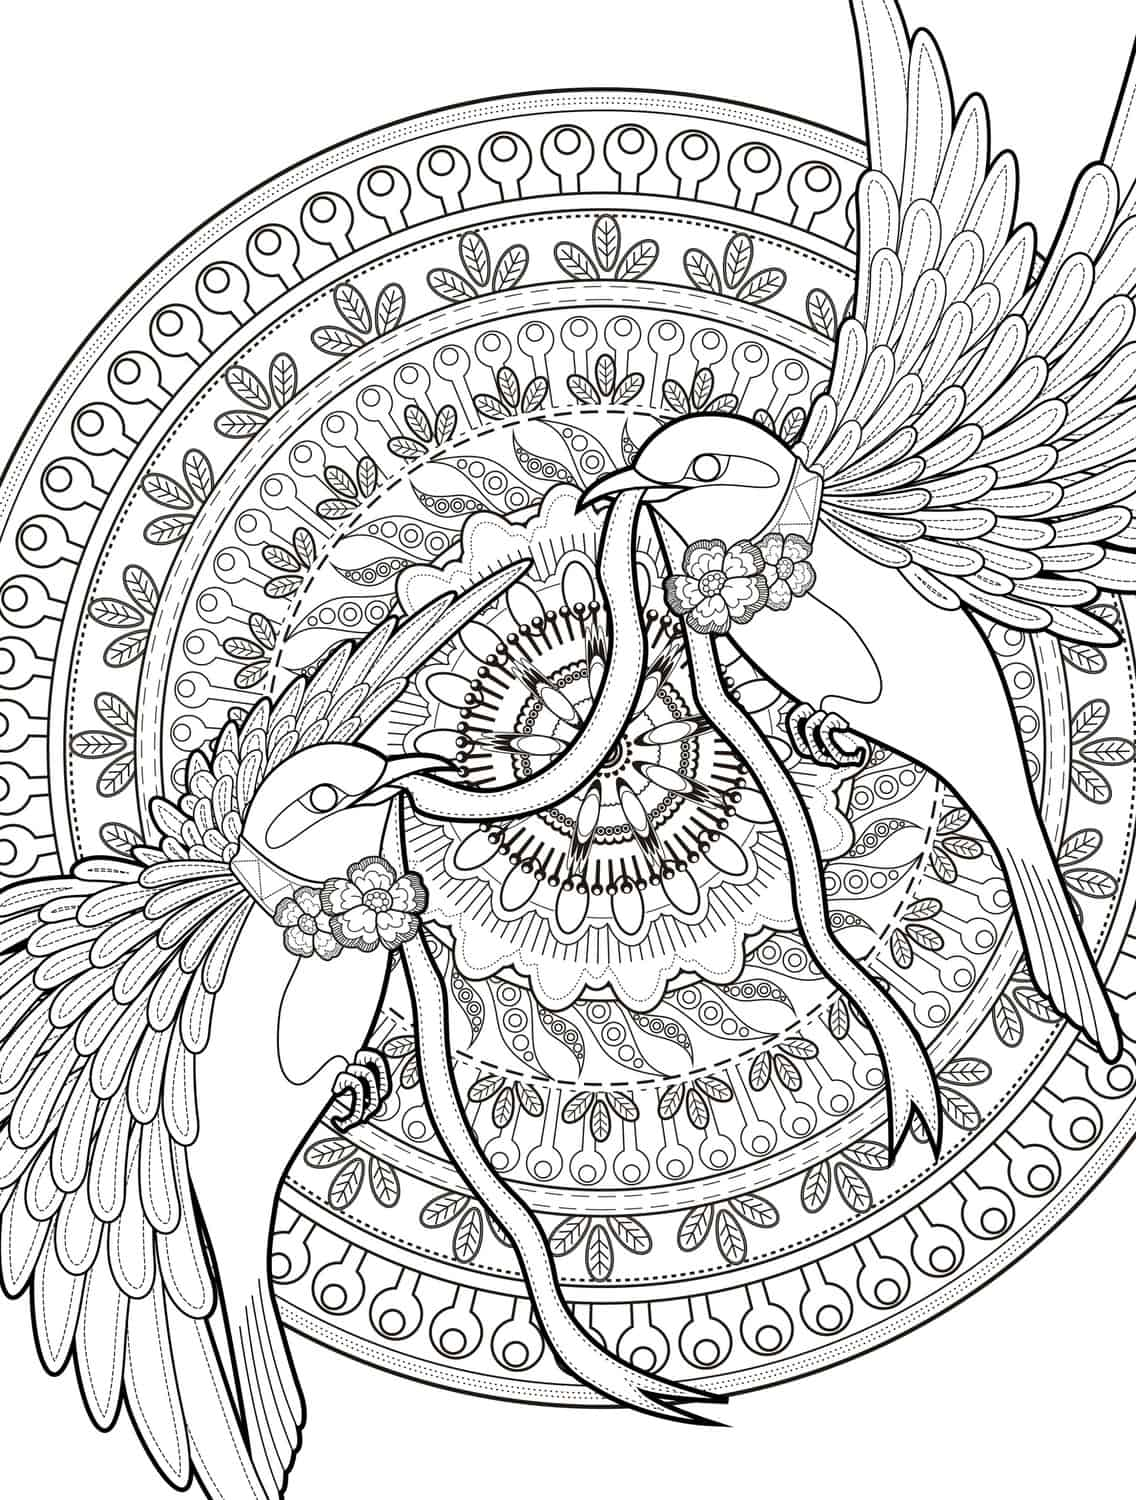 Free downloadable coloring pages for adults -  Adult Coloring Pages With Birds Free Downloadable Web Download